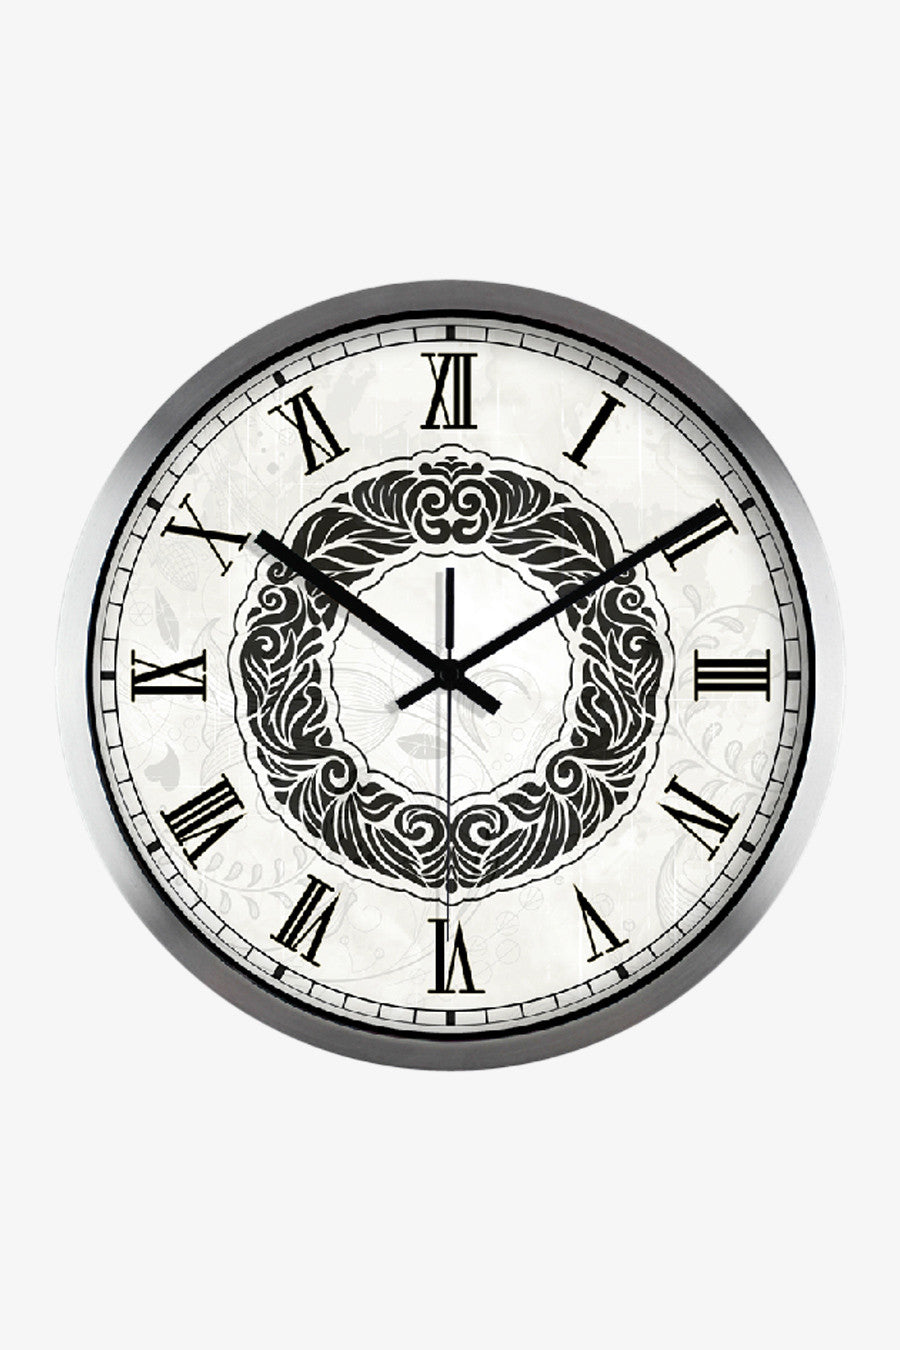 Retro Art Wall Clock In Silver Satin